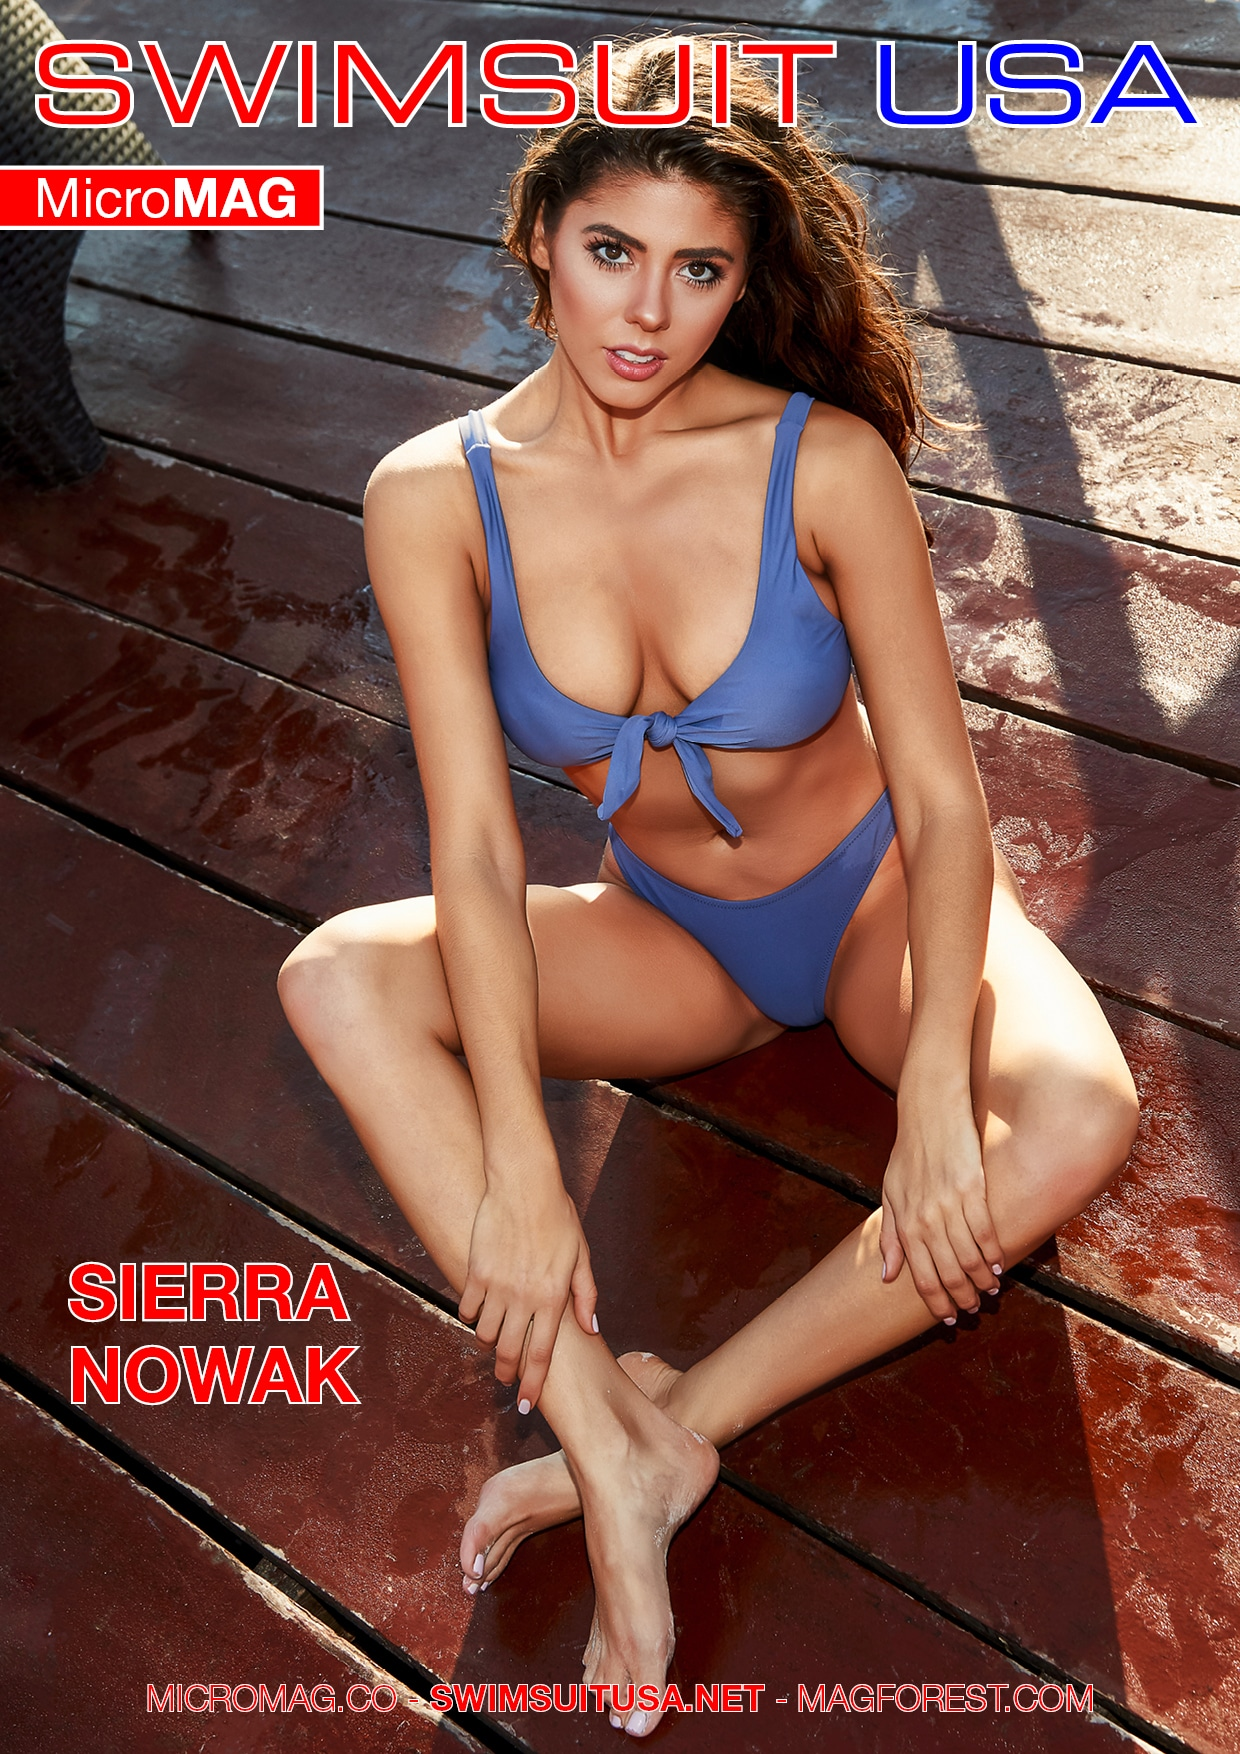 Swimsuit USA MicroMAG - Andrada Pop - Issue 2 4